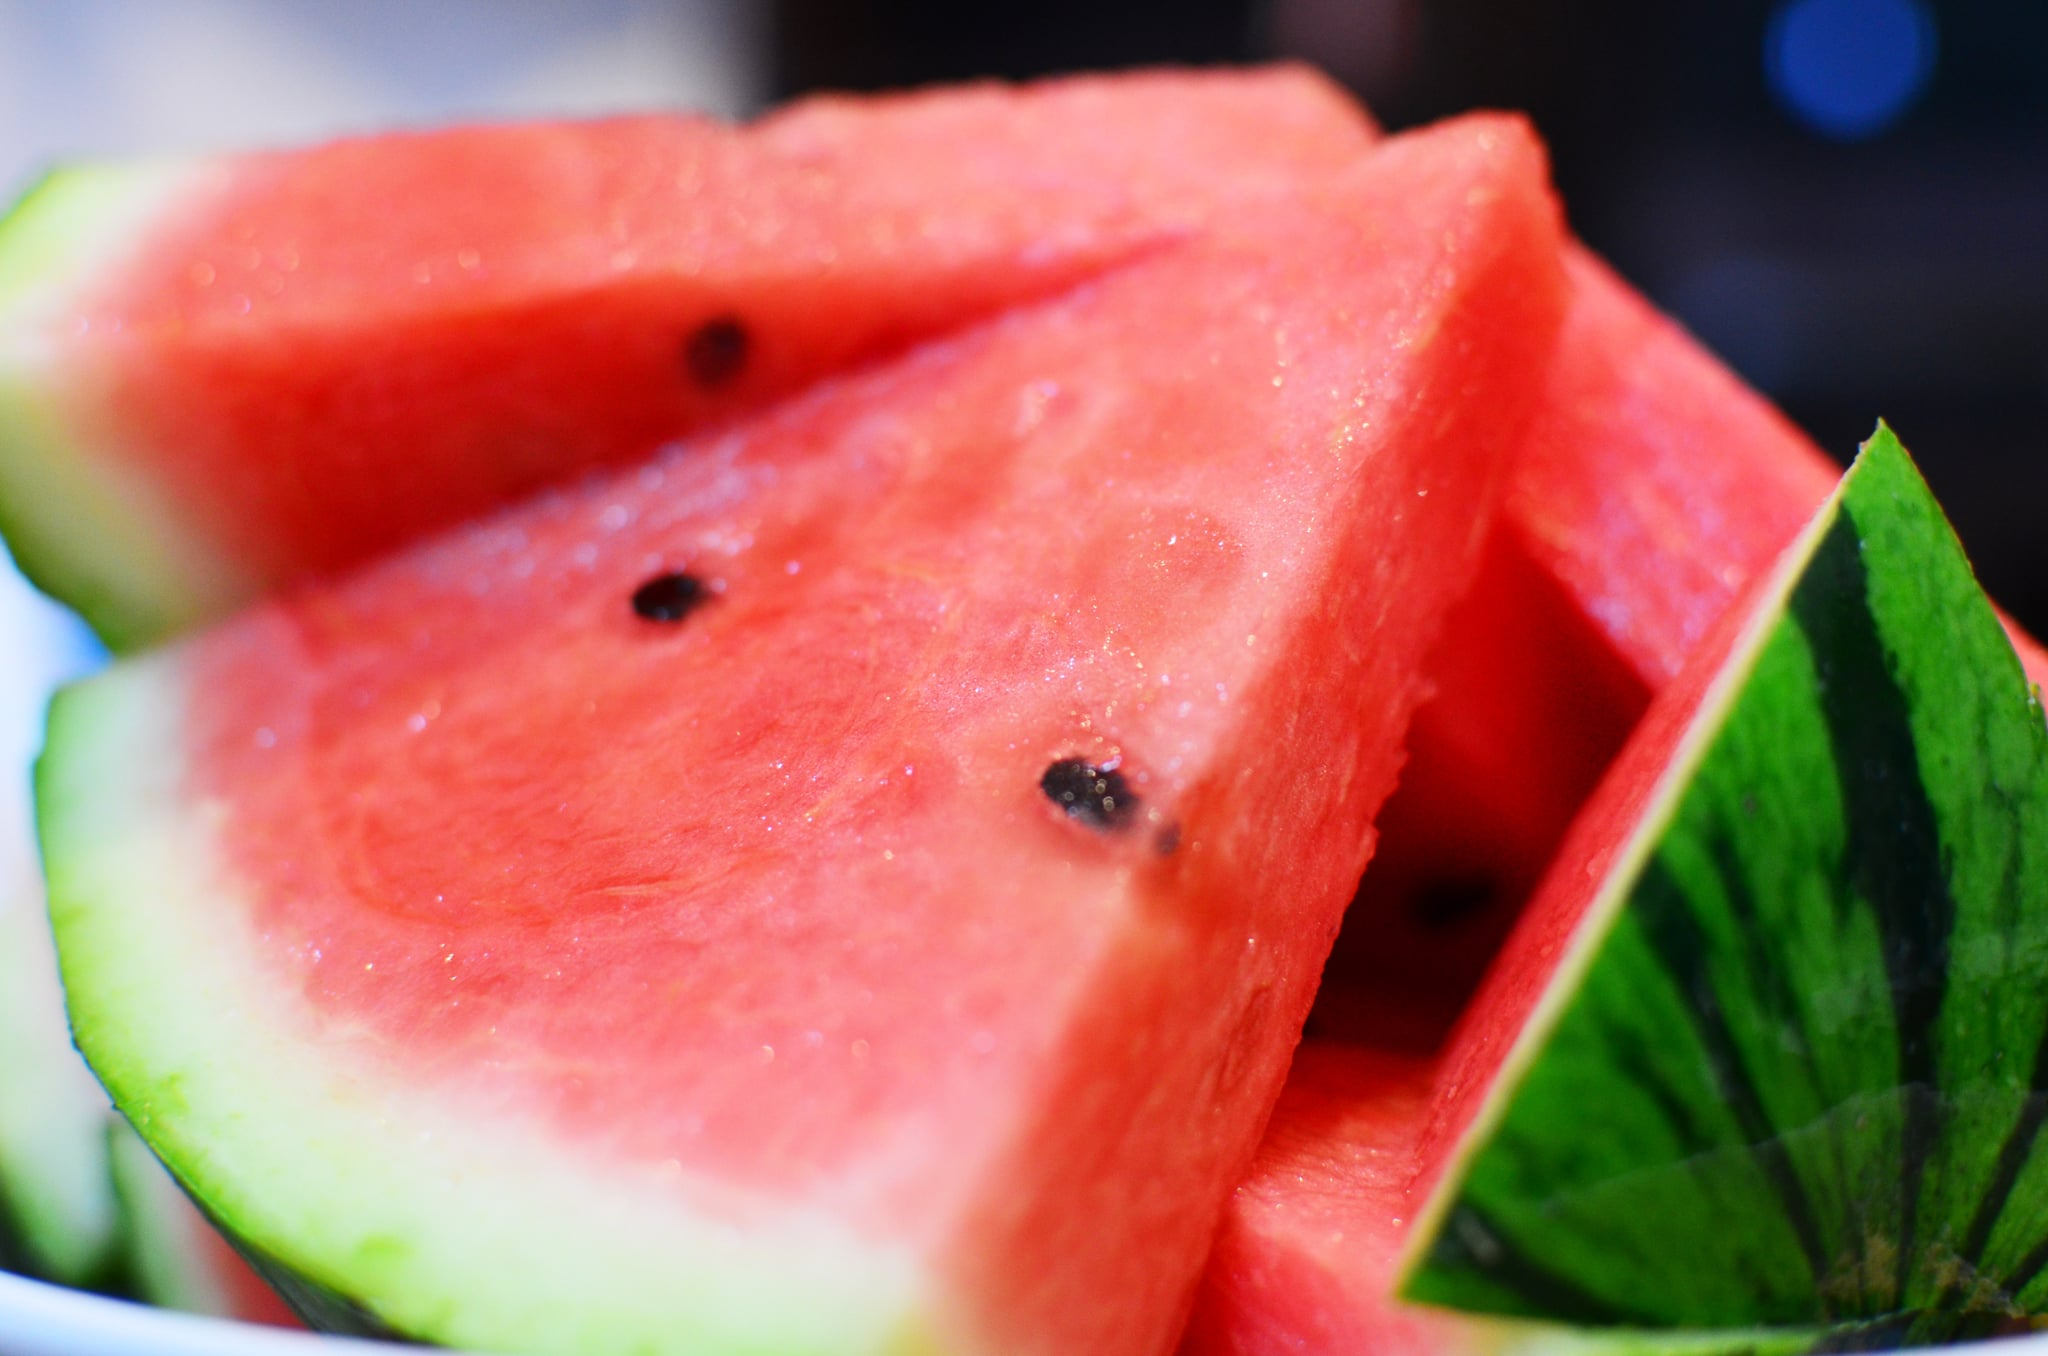 Close up of watermelon slices.